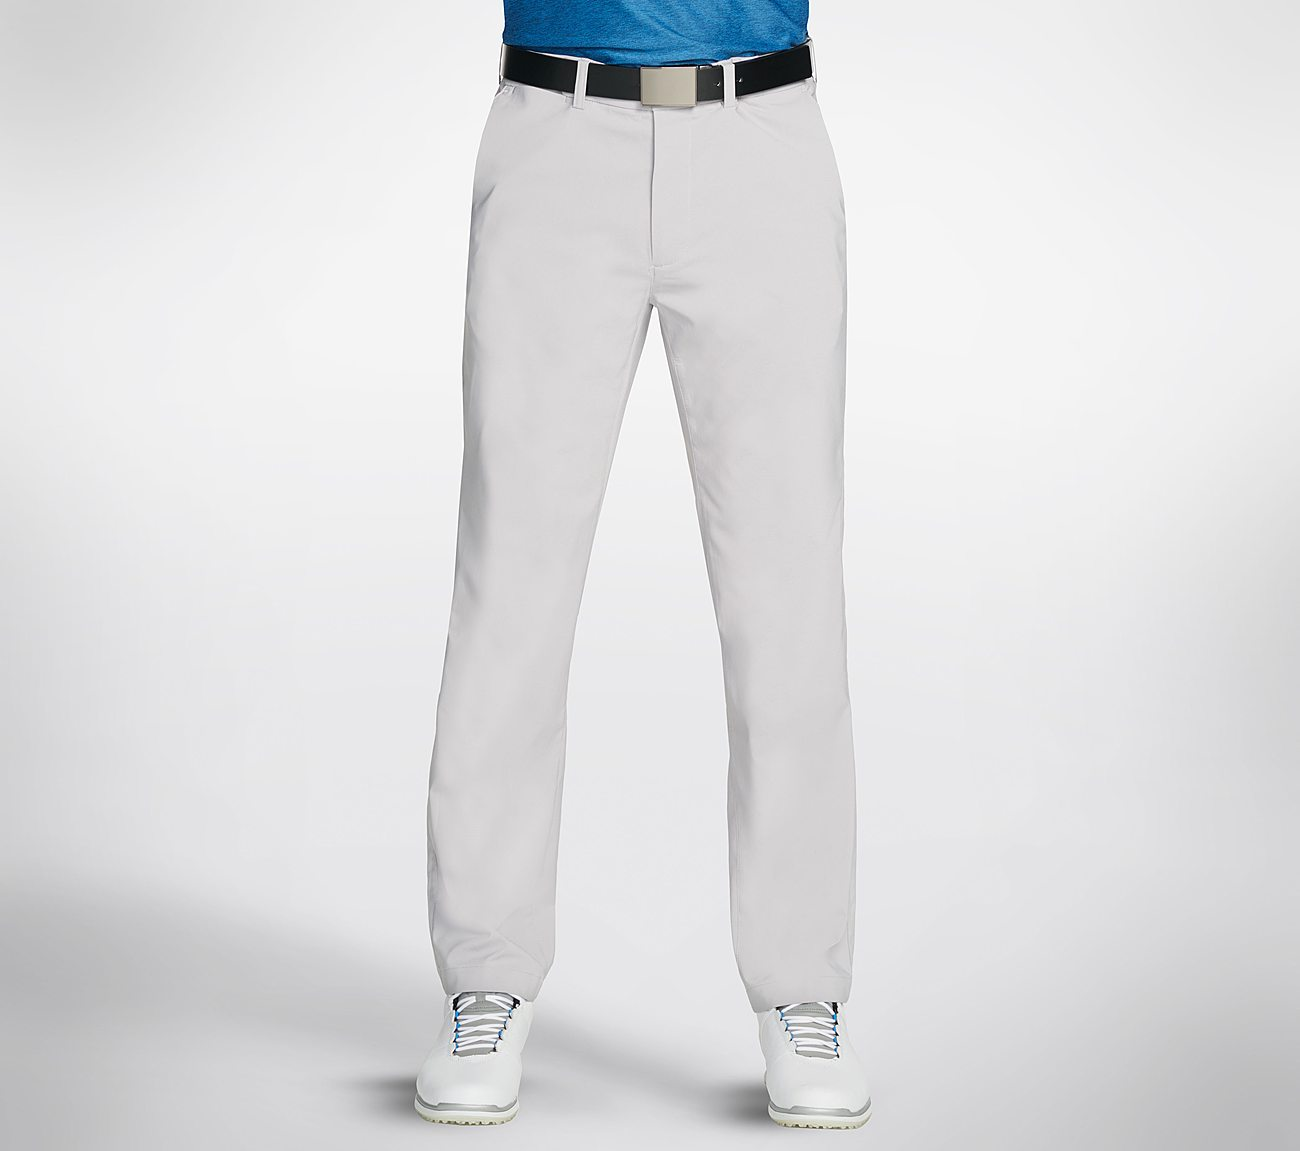 Rocklin Golf Chino Pant